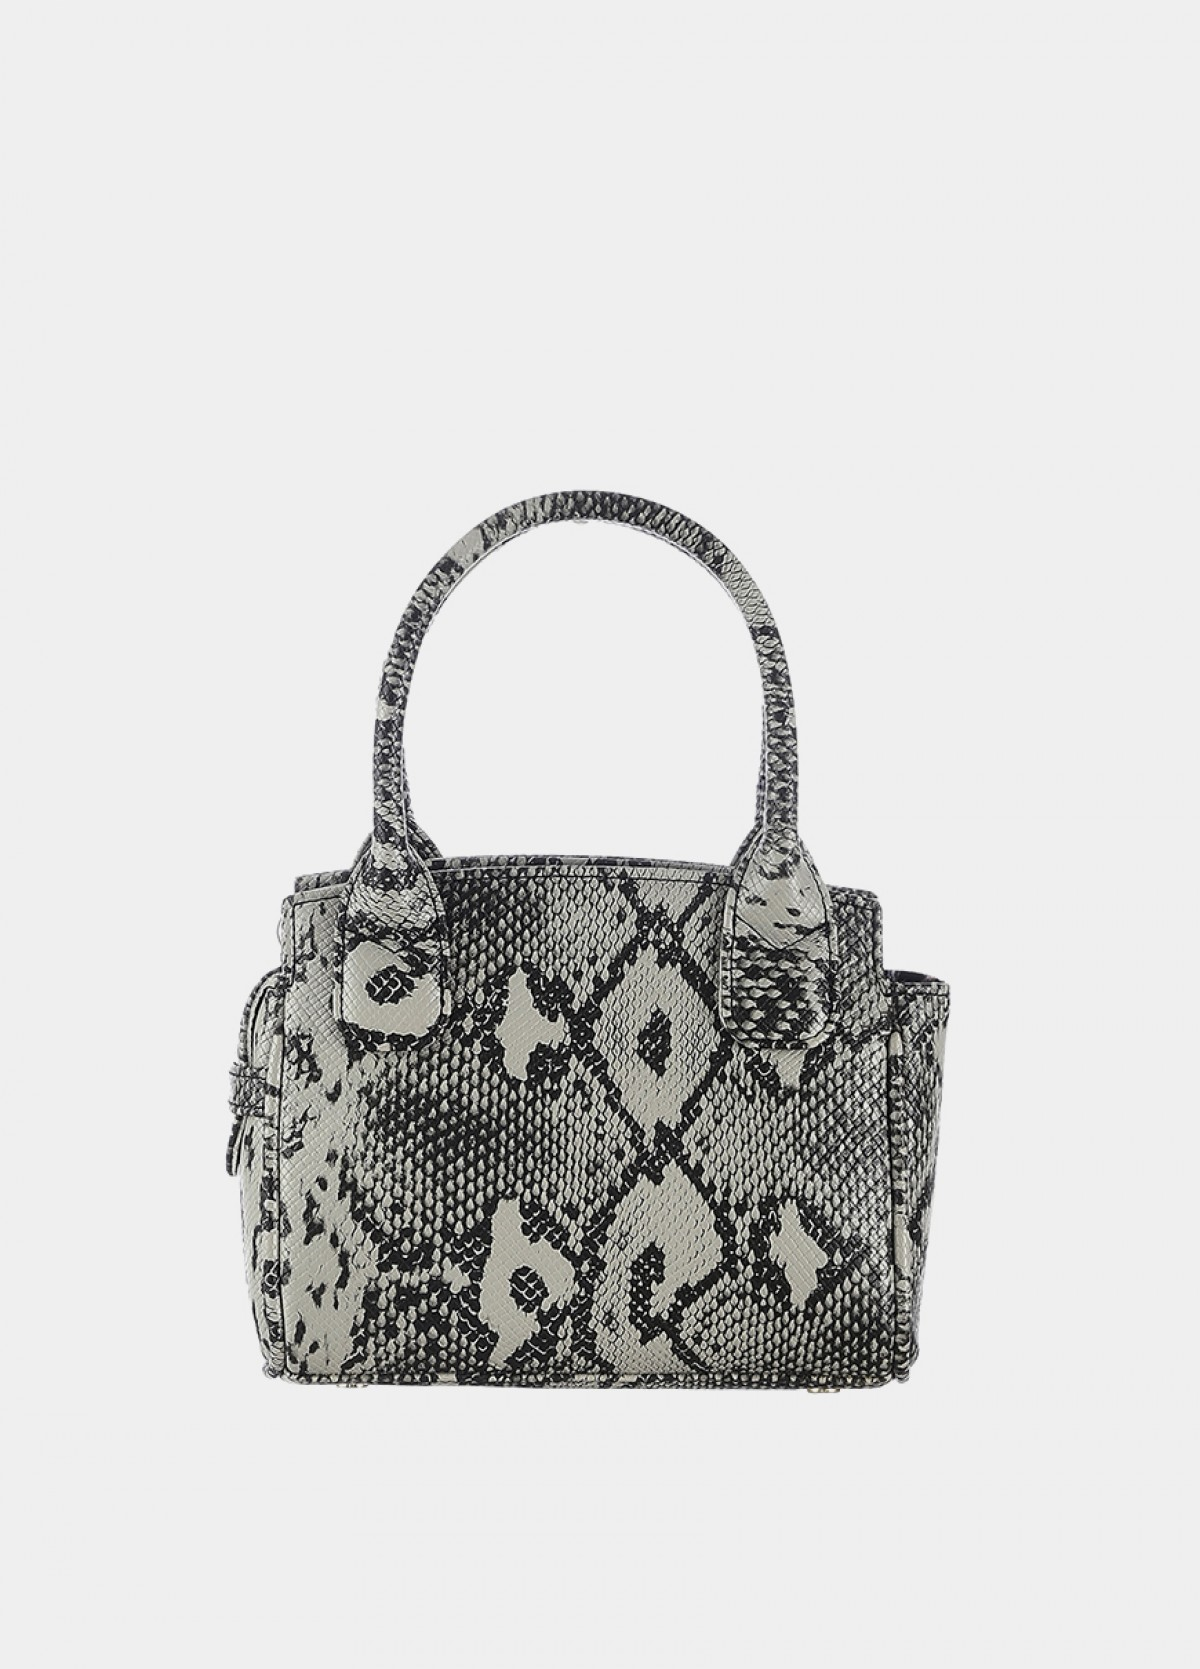 The Printed Snake Clutch